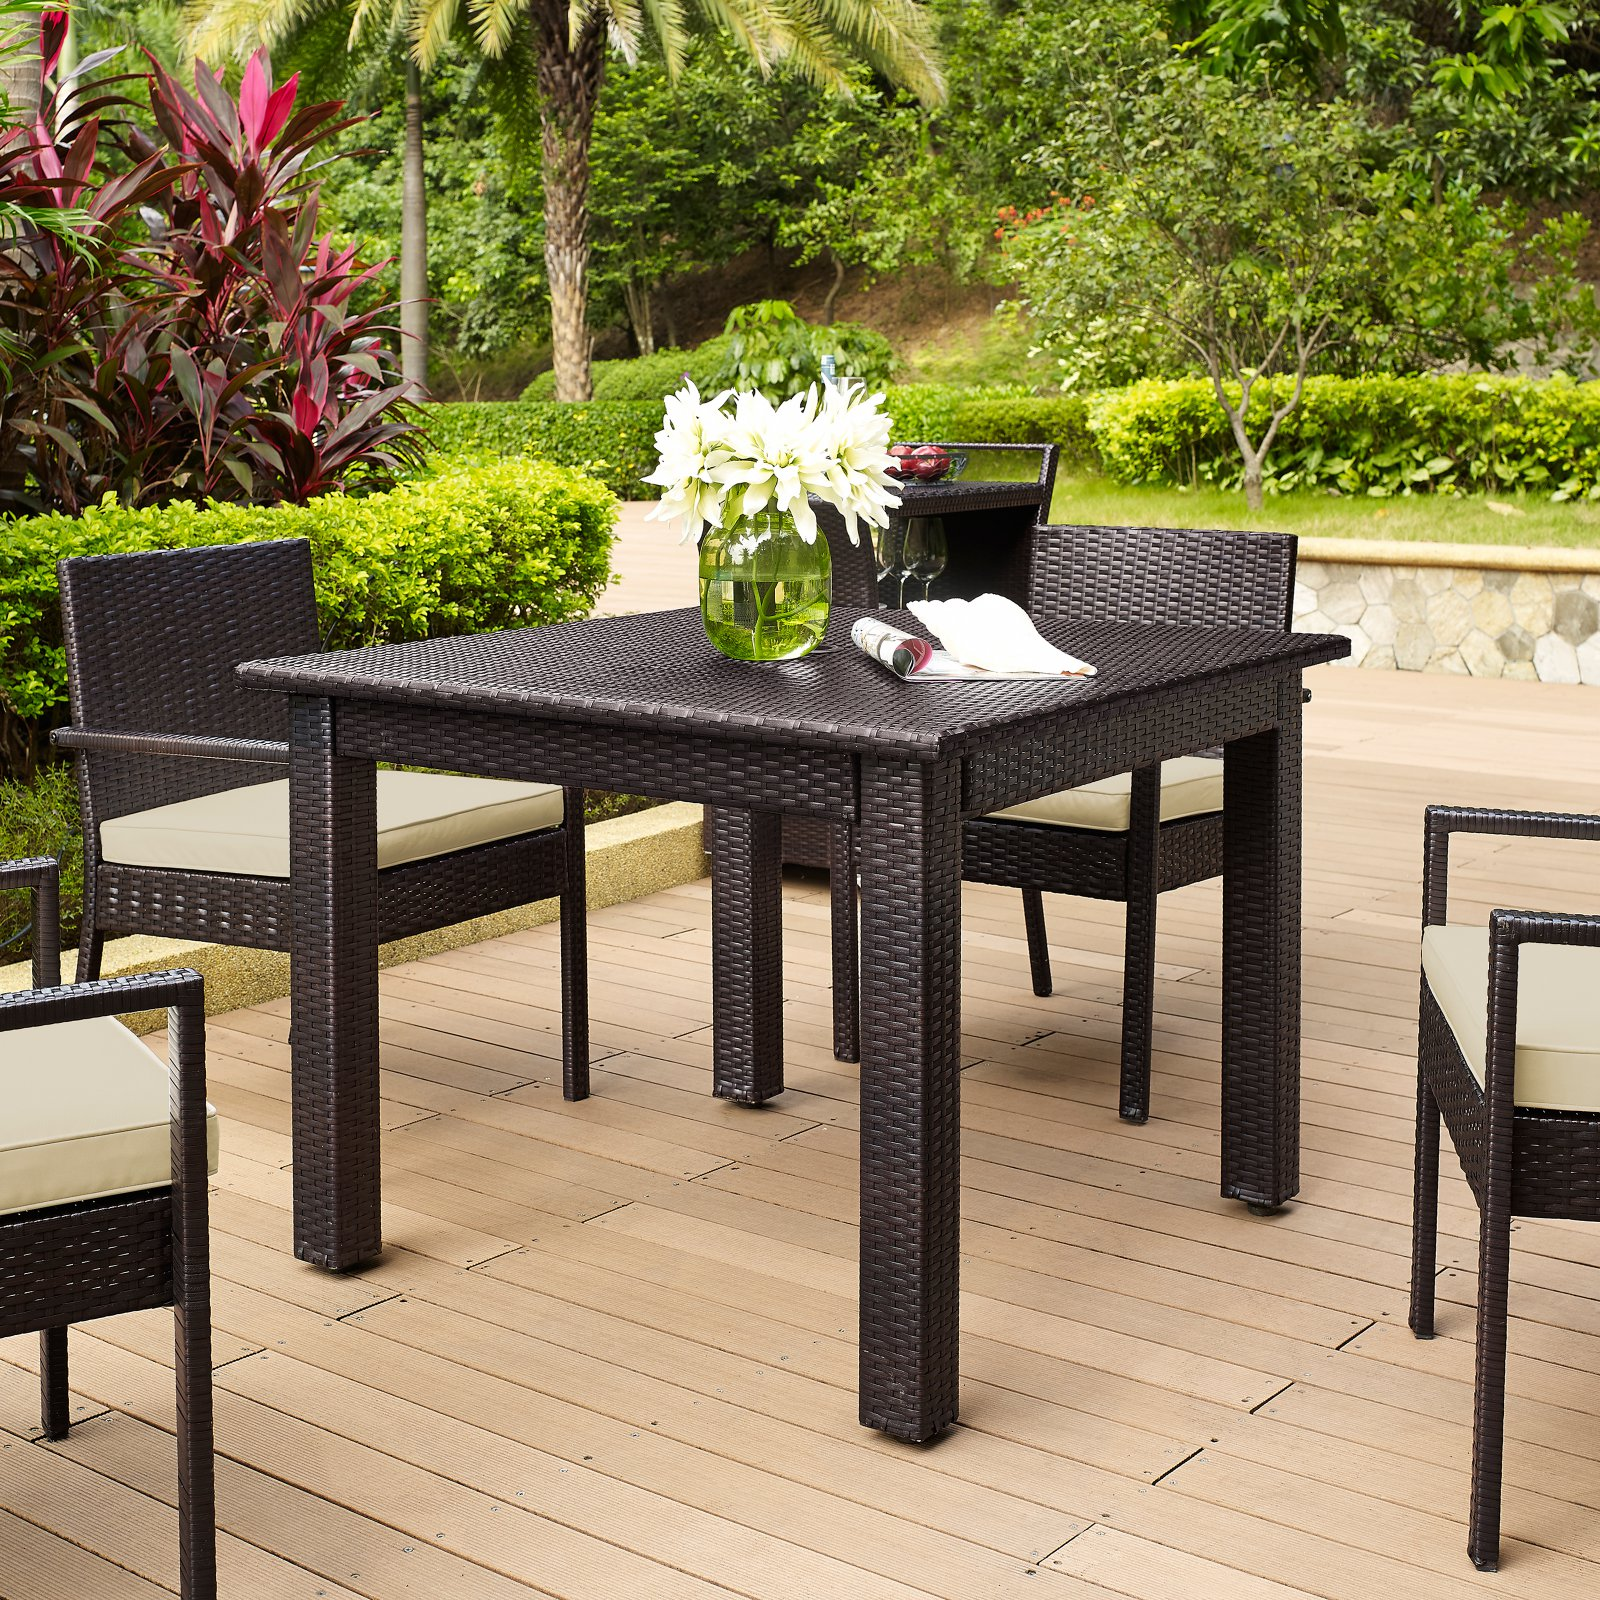 Crosley Palm Harbor Outdoor Wicker Square Dining Table